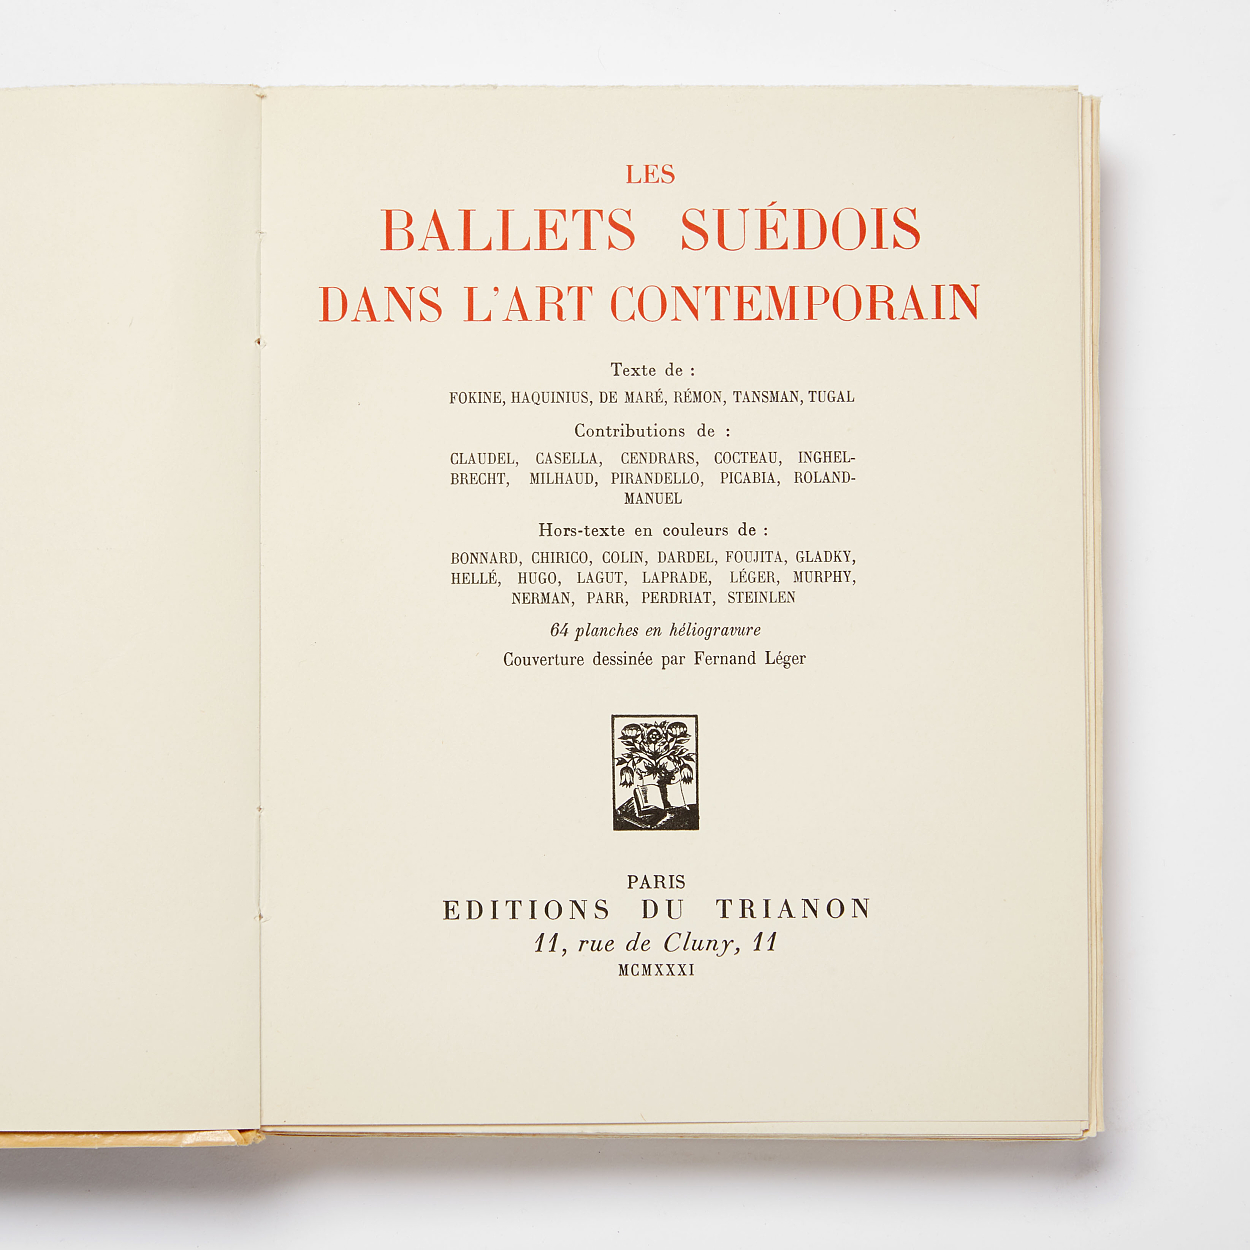 Les Ballets Suedois with plates 1931